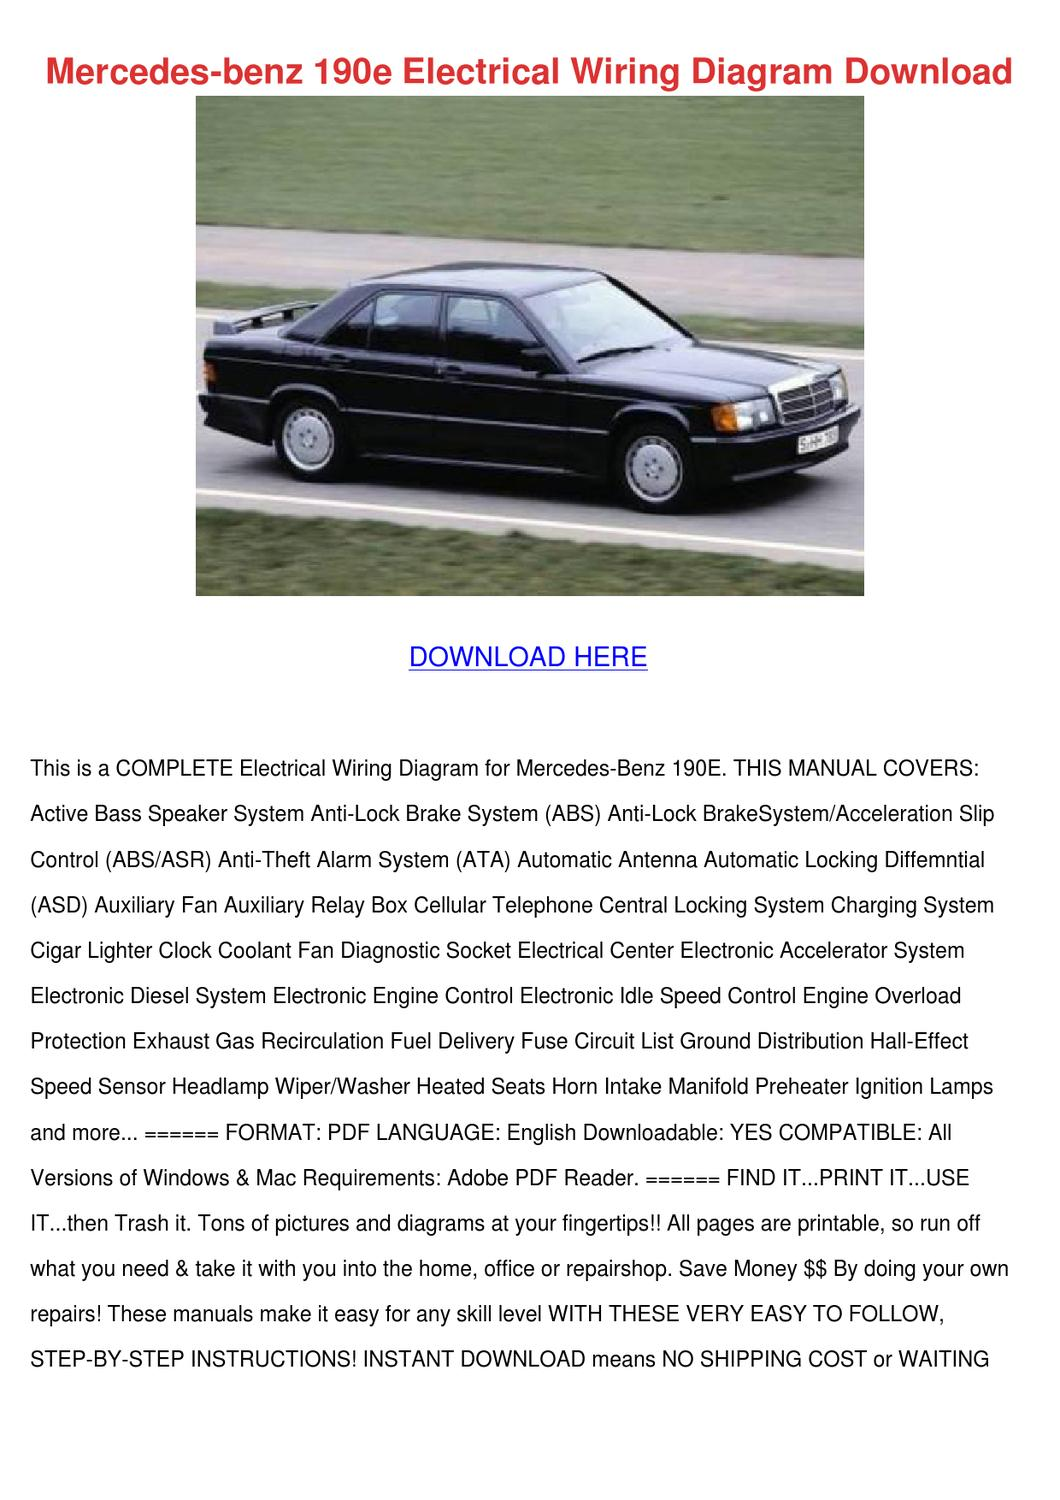 Mercedes Benz W201 Wiring Diagram